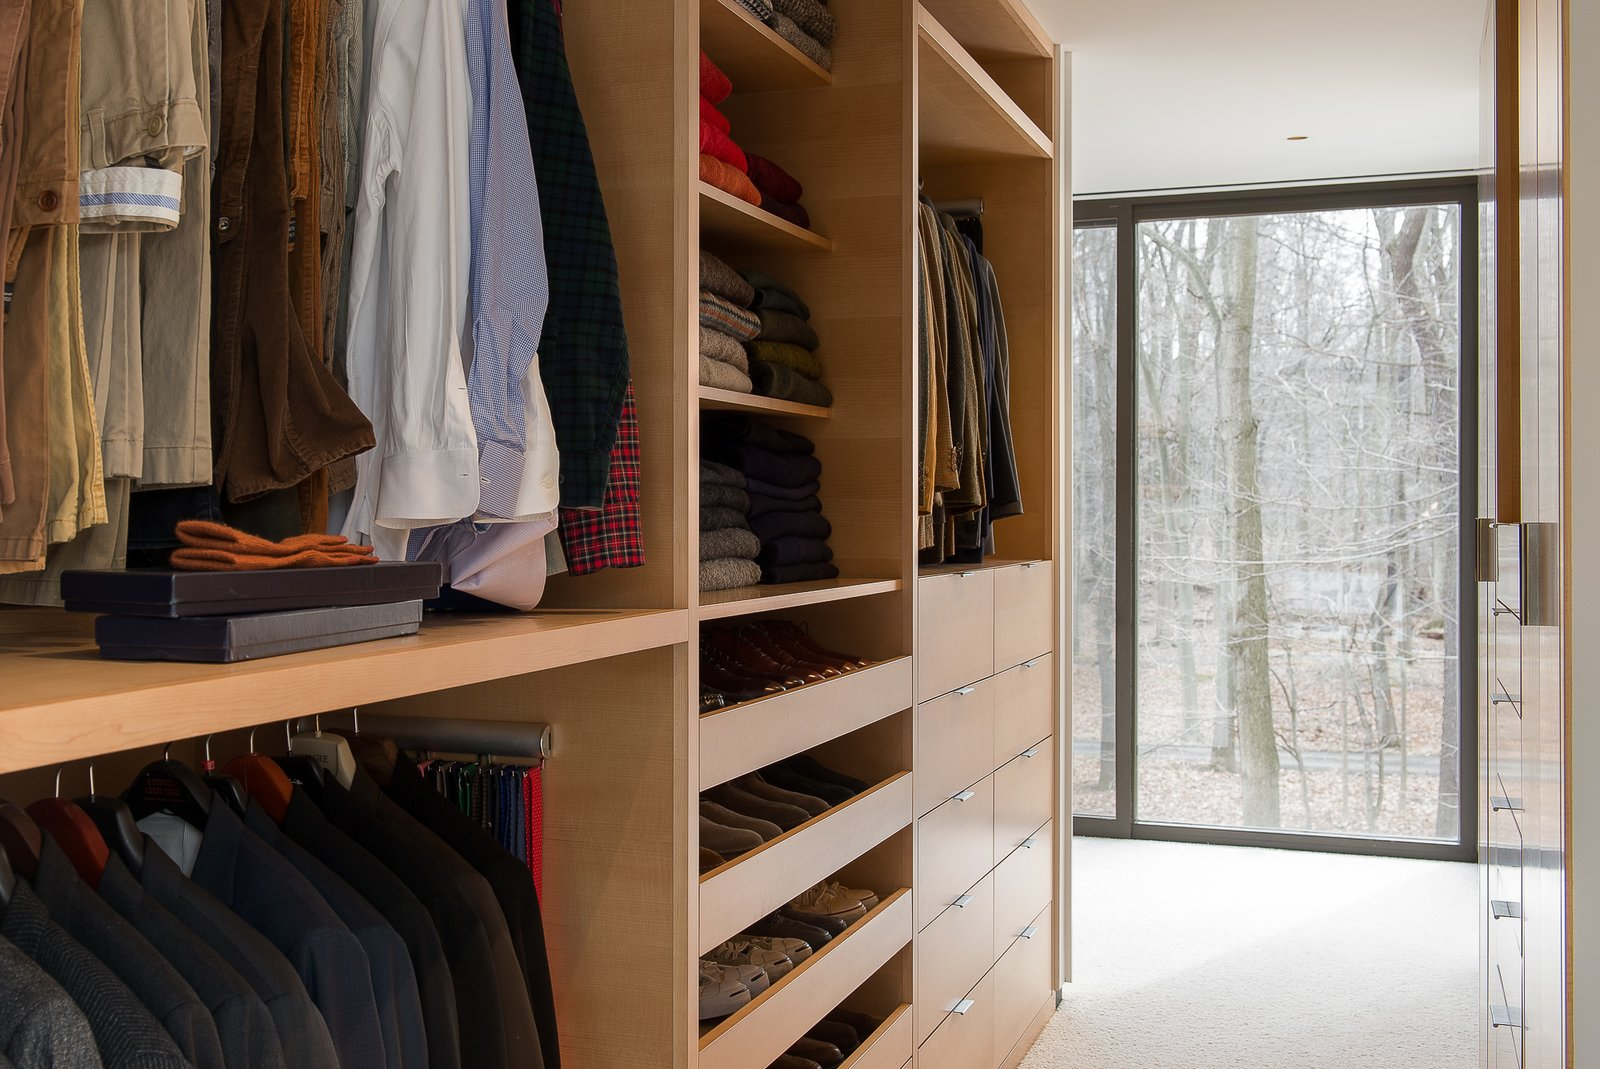 Custom cabinetry, open walk-in Tagged: Storage Room and Closet Storage Type. House in the Woods by Kim Smith